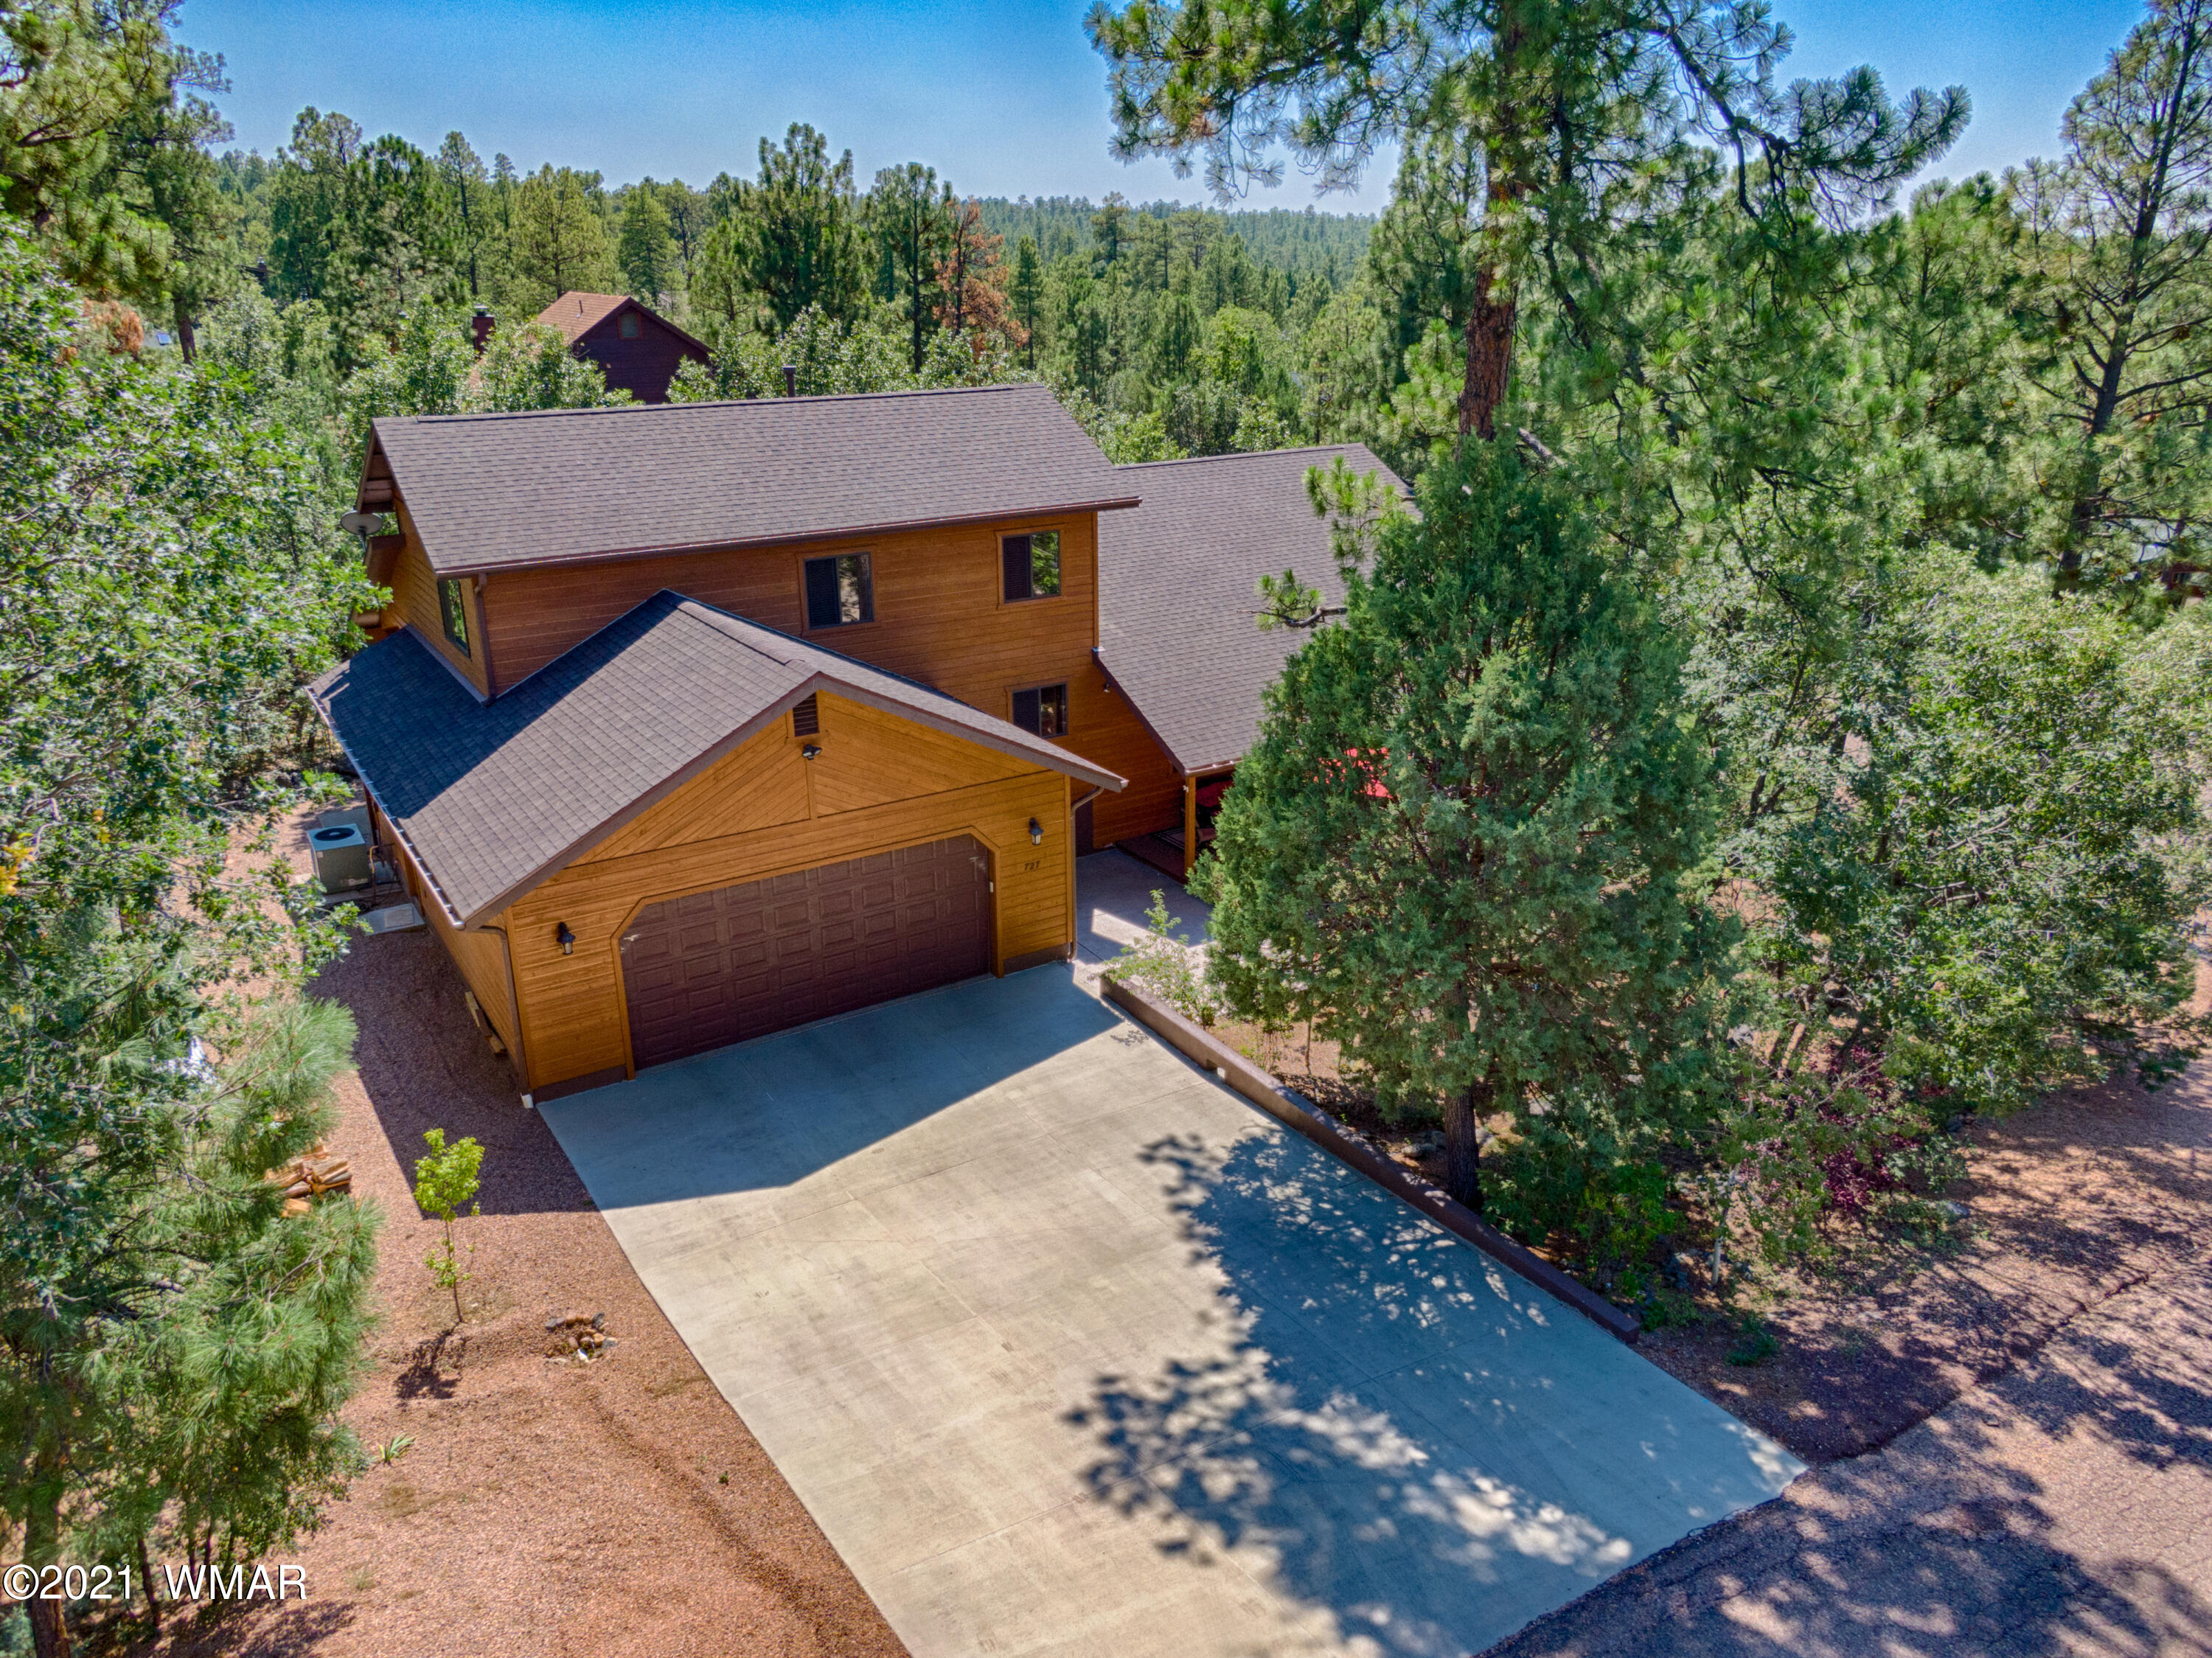 Beautiful cabin on a corner lot at The Woods in Pinetop. Original owners with pride of ownership throughout! Large wrap around deck greets you as you enter this home. A grand entrance with open great room, dining and kitchen. Maple floors, granite countertops, custom cabinets, incredible floor to ceiling stone fireplace, split bedroom floor plan, large windows throughout letting the beautiful mountain sky come through. Garage with epoxy floors, and so much more!  NO HOA.   Home is occupied but easy to show. Use showing time. PLEASE REMOVE SHOES OR USE THE BOOTIES BY THE DOOR WHERE THE LOCKBOX IS HANGING. THANK YOU.